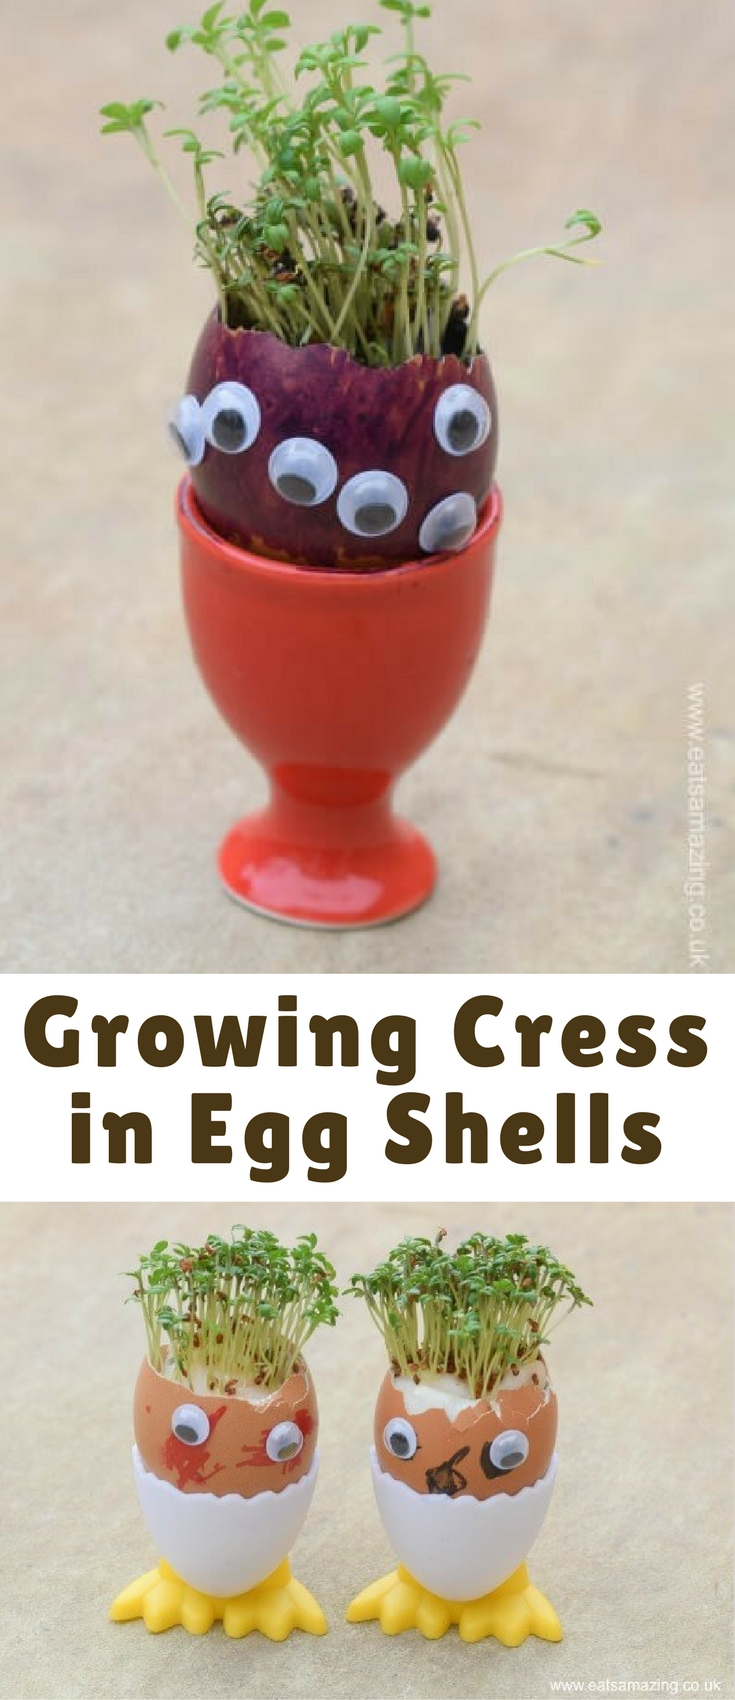 Do you remember growing cress in egg shells as a child? I think this is a classic childhood activity that everyone should try at least once in their life and it's the ideal place to start if you want your kids to get involved in growing food.